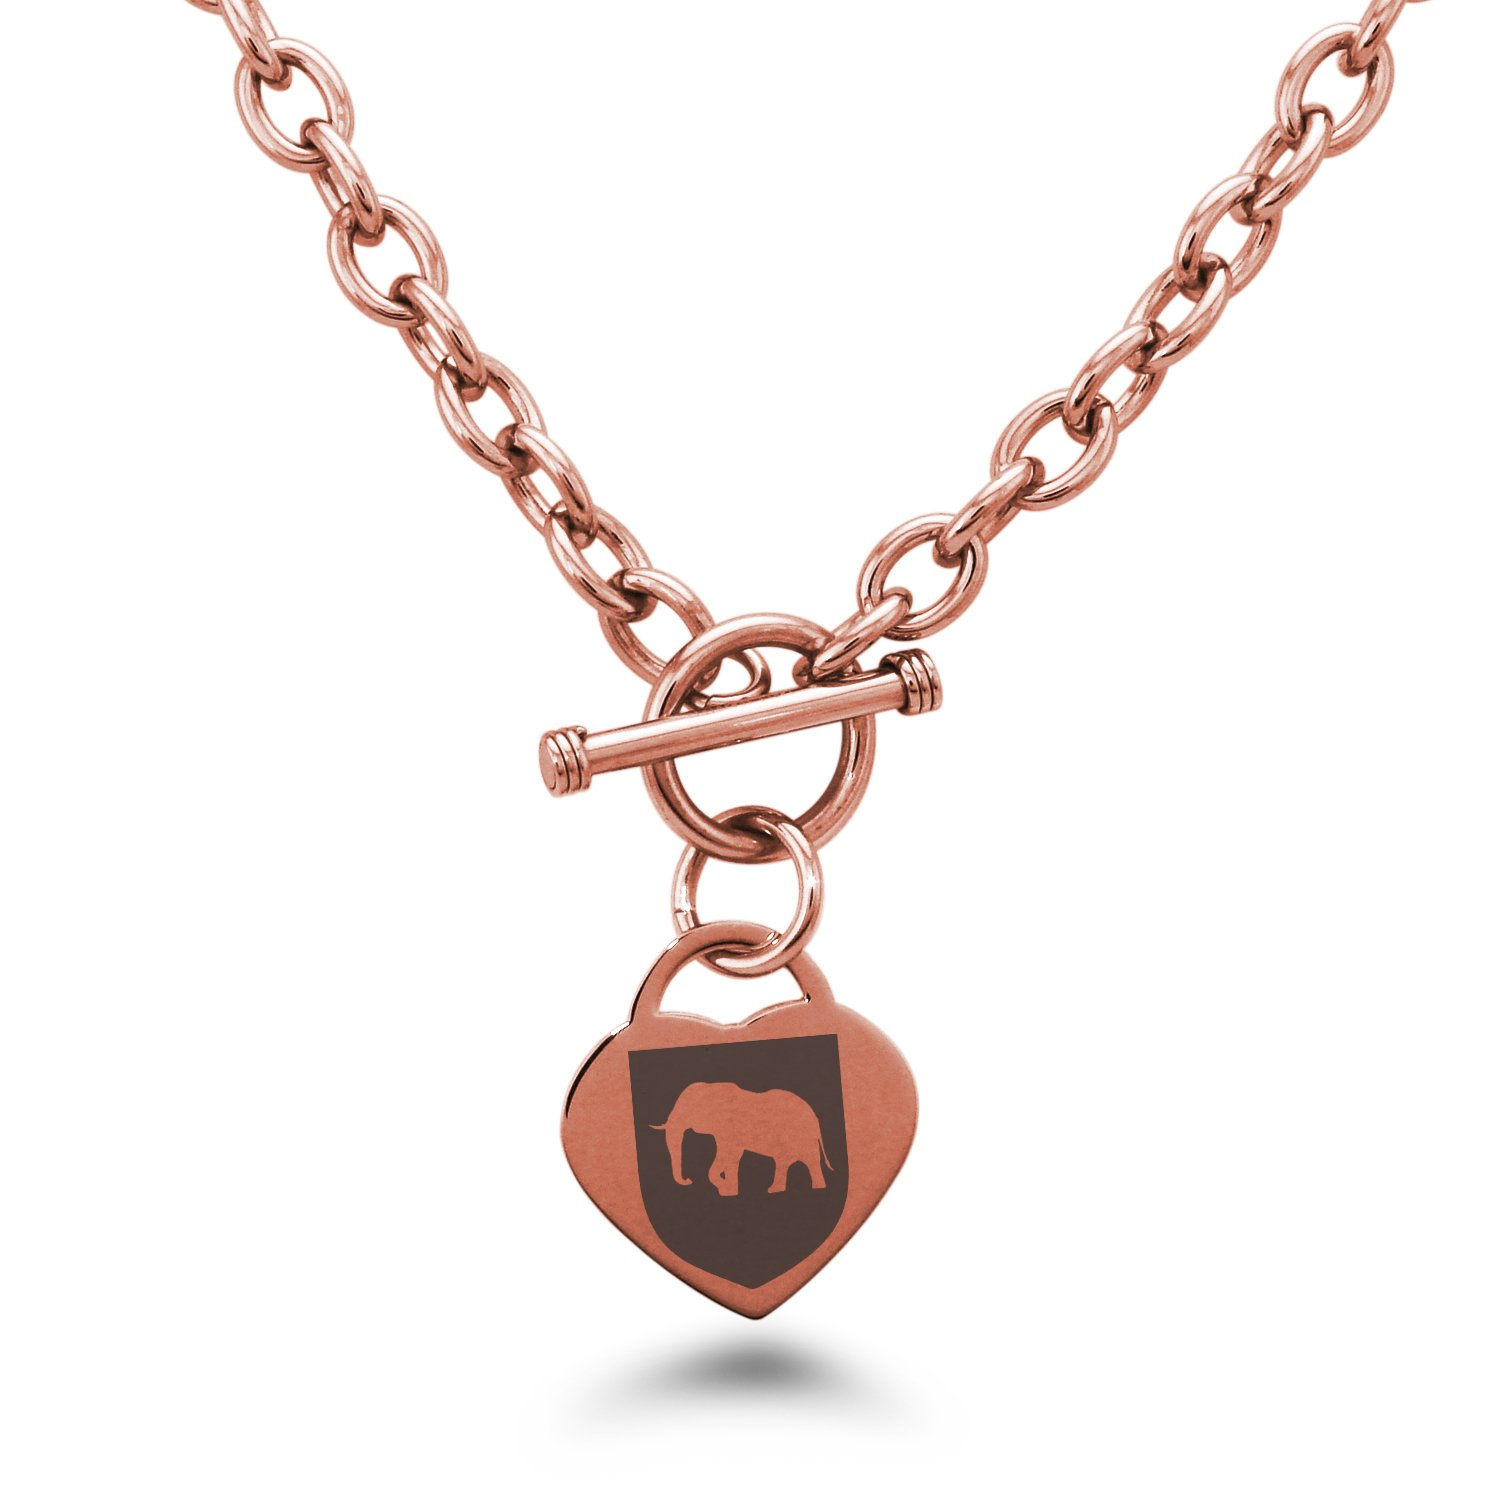 Tioneer Rose Gold Plated Stainless Steel Elephant Strength Coat of Arms Shield Symbols Heart Charm, Necklace Only